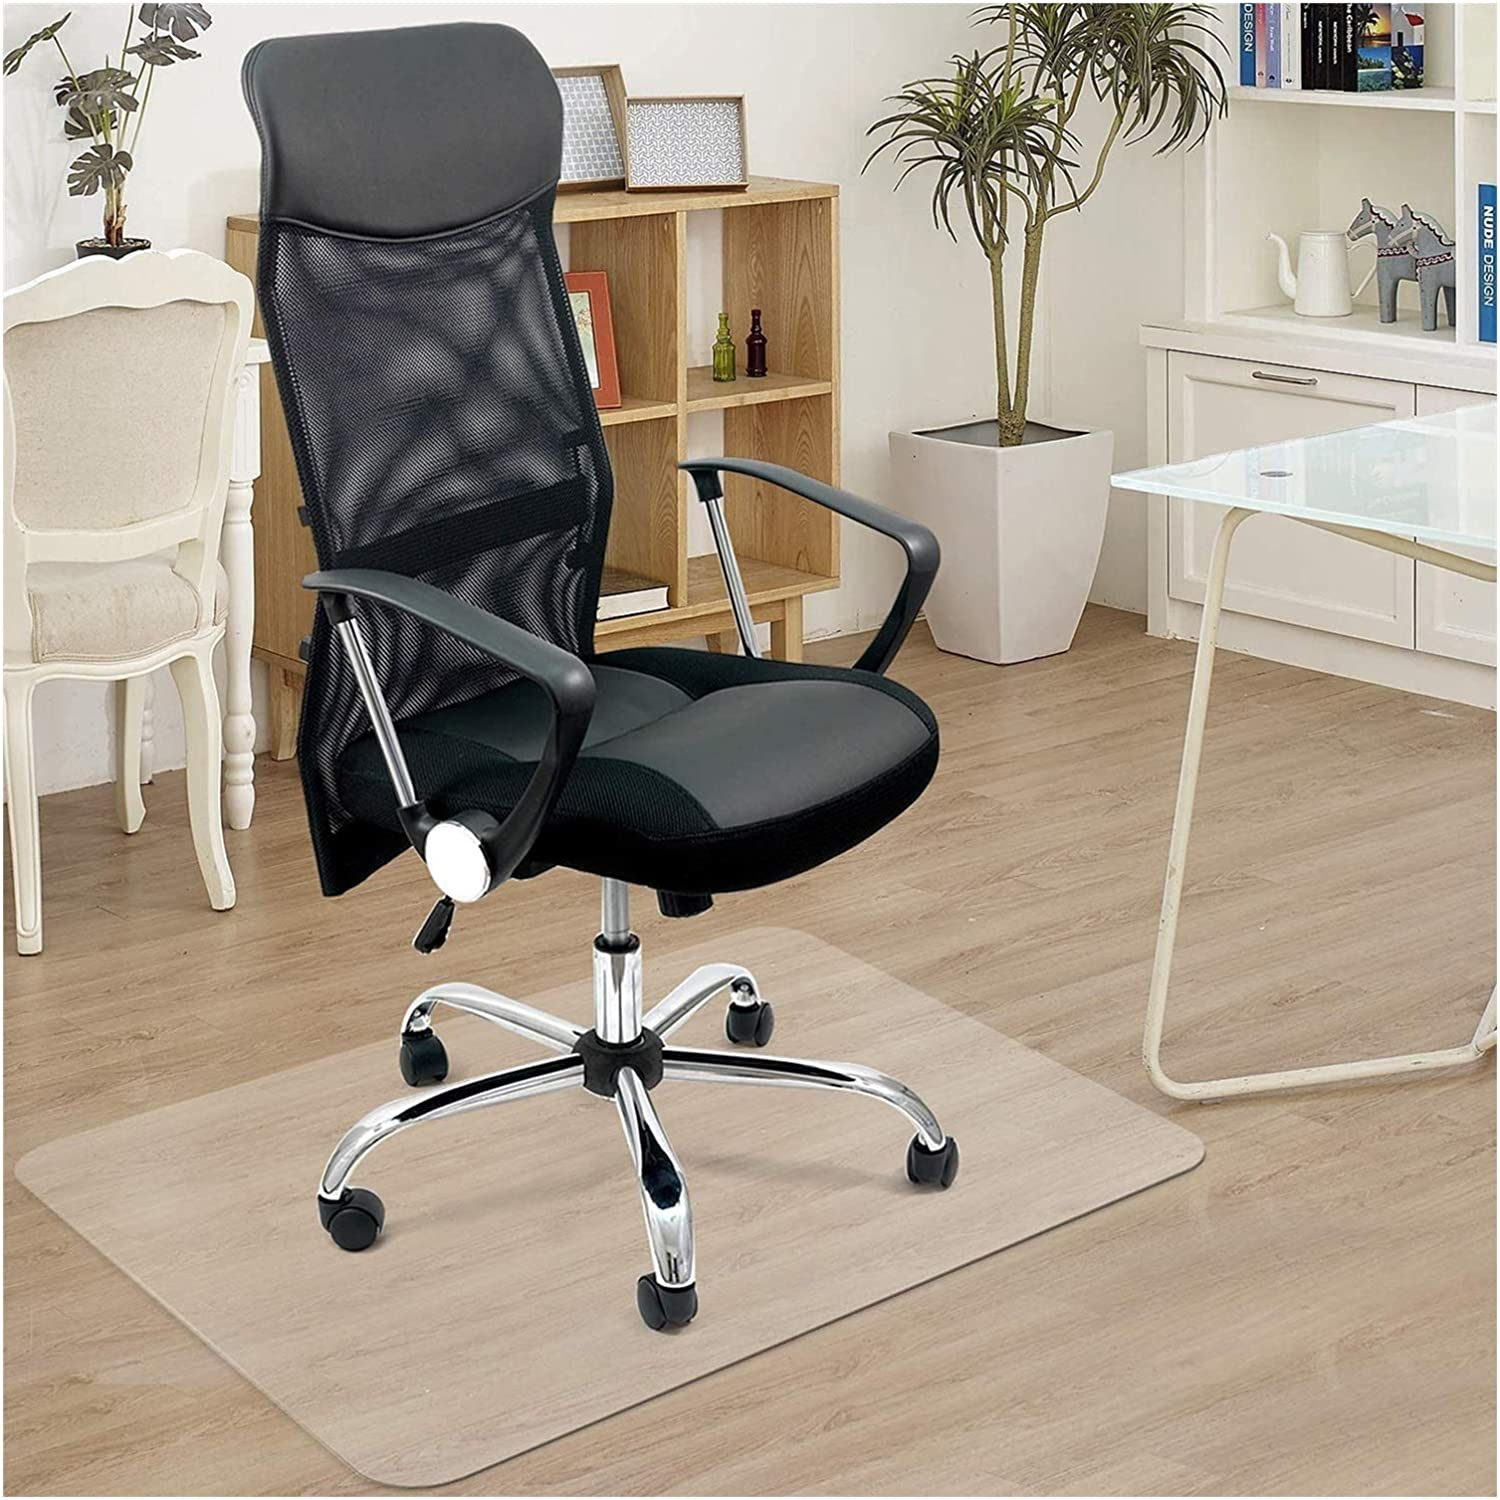 AWSAD Office Chair Mat Floor Durab Rolling Easy-to-use Effortless Bombing free shipping Protector